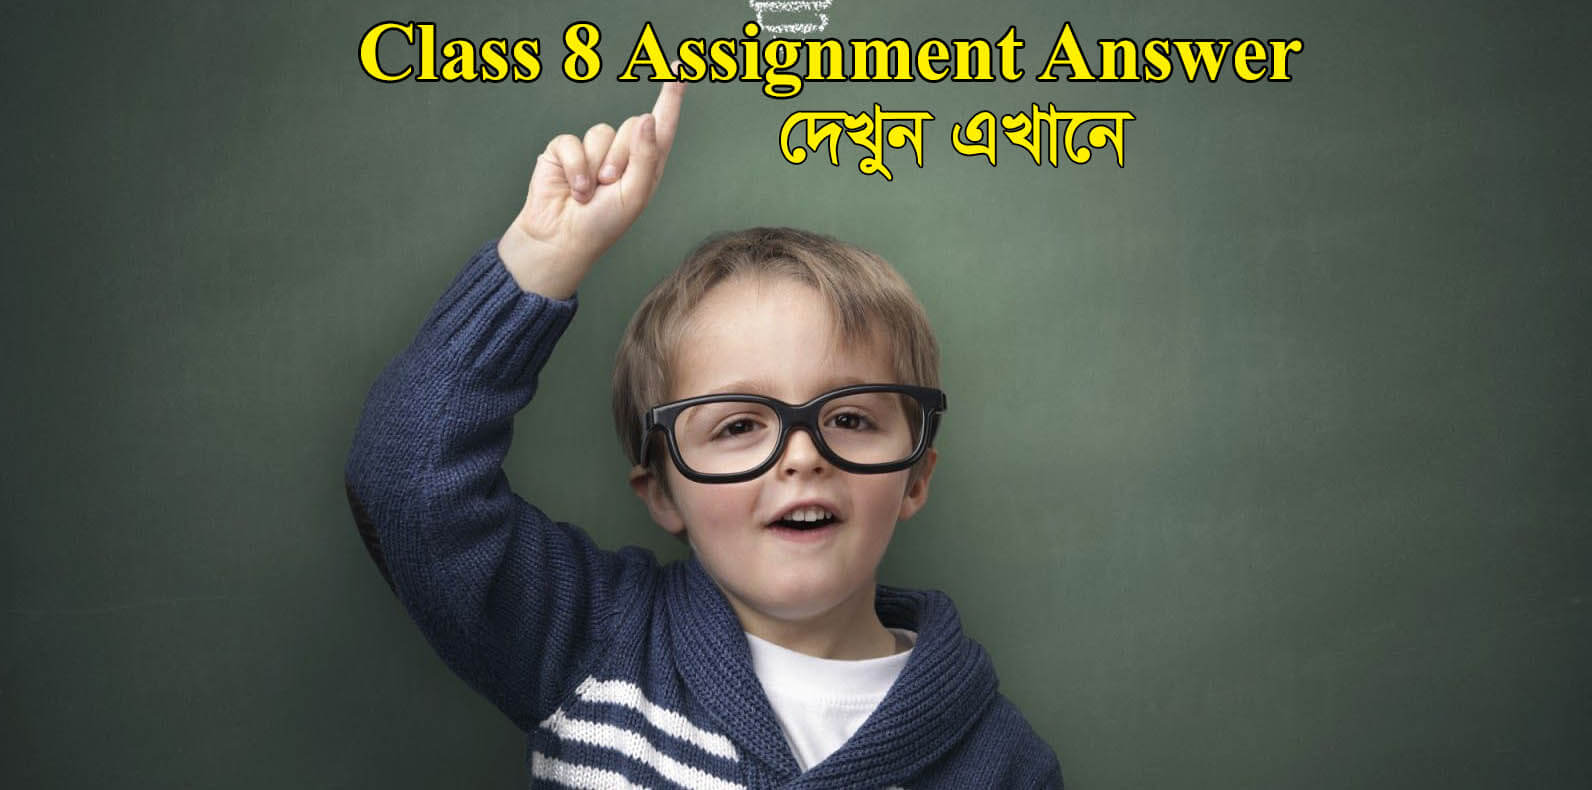 Class 8 Assignment Answer